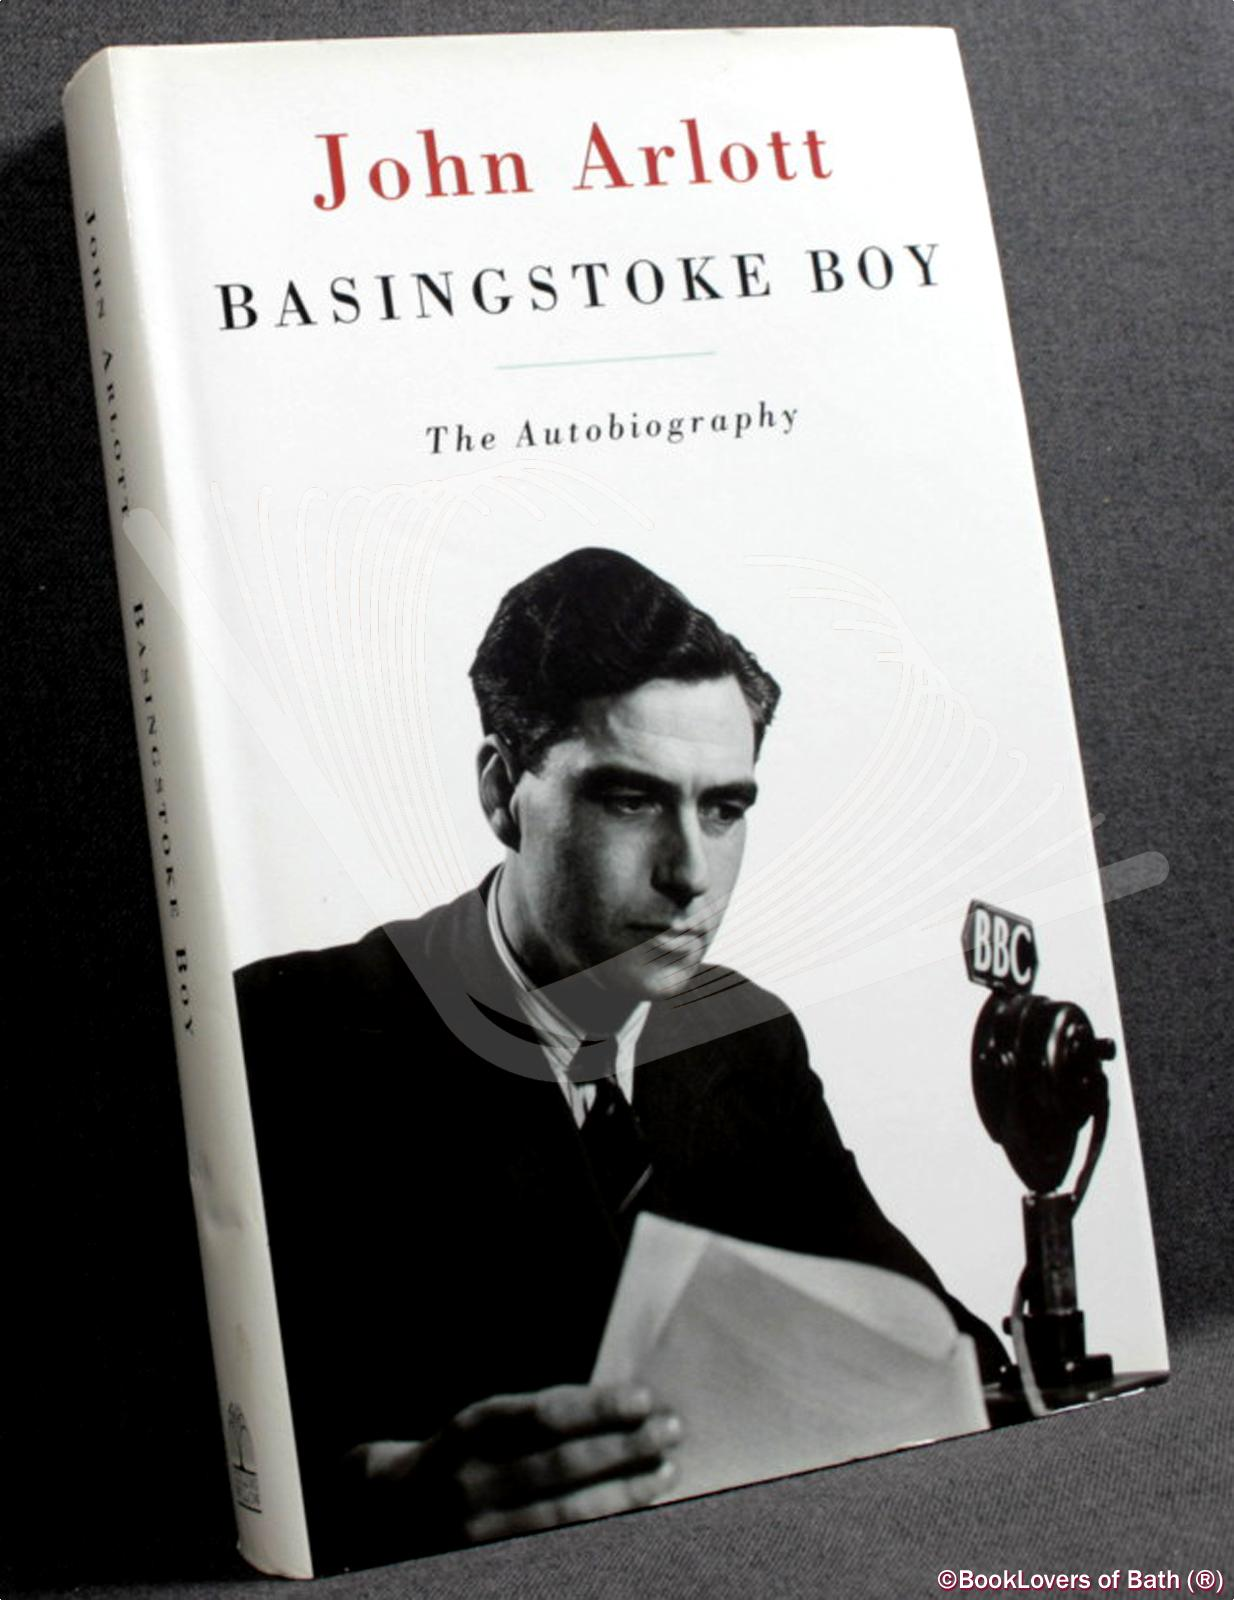 Basingstoke Boy: The Autobiography - John Arlott